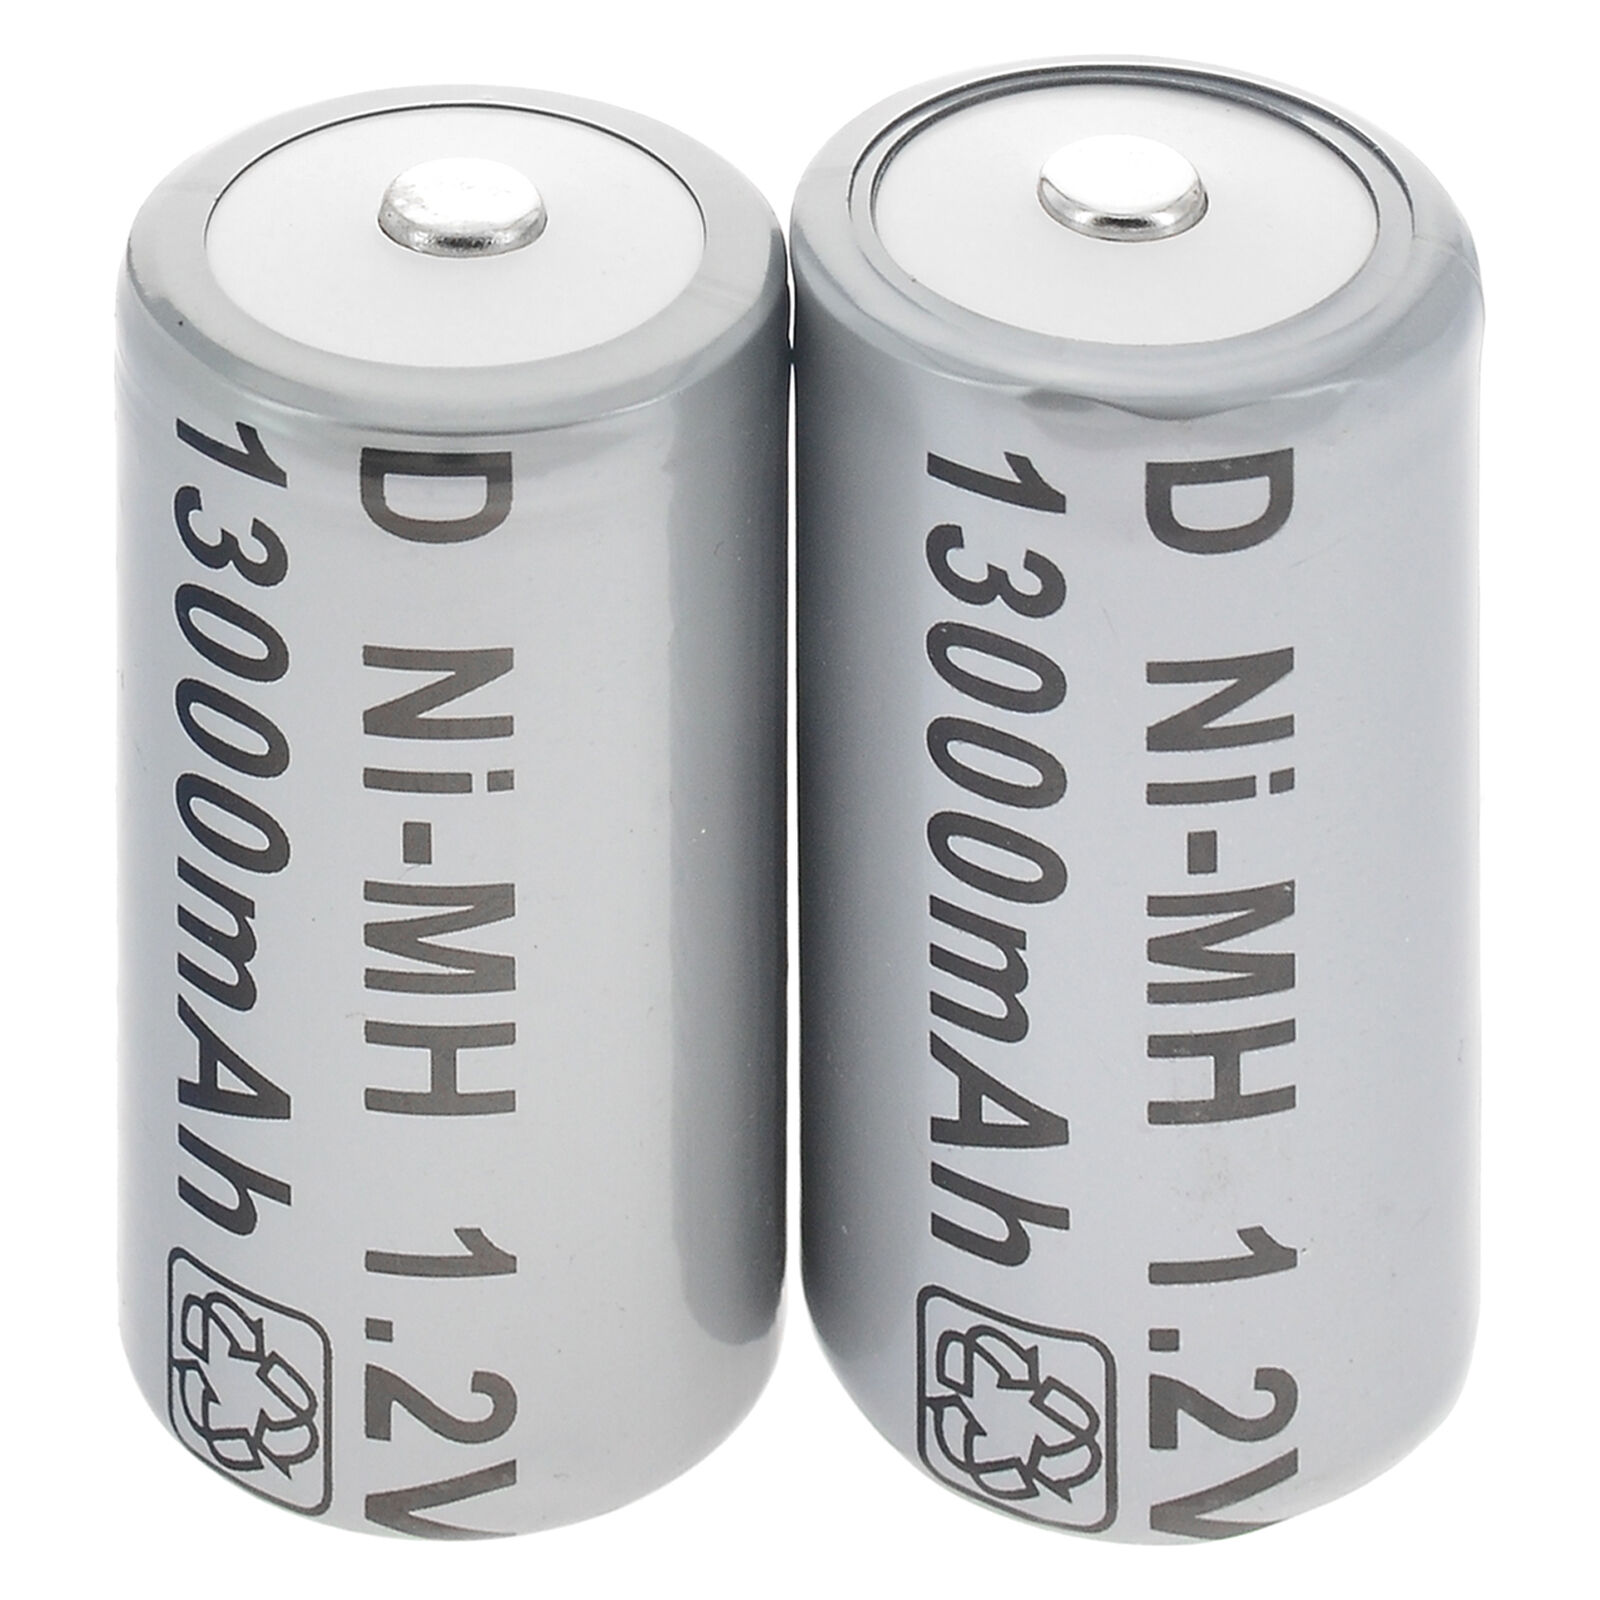 2pcs D Size D-Type 13000mAh 1.2V Ni-MH Rechargeable Battery Cell Grey